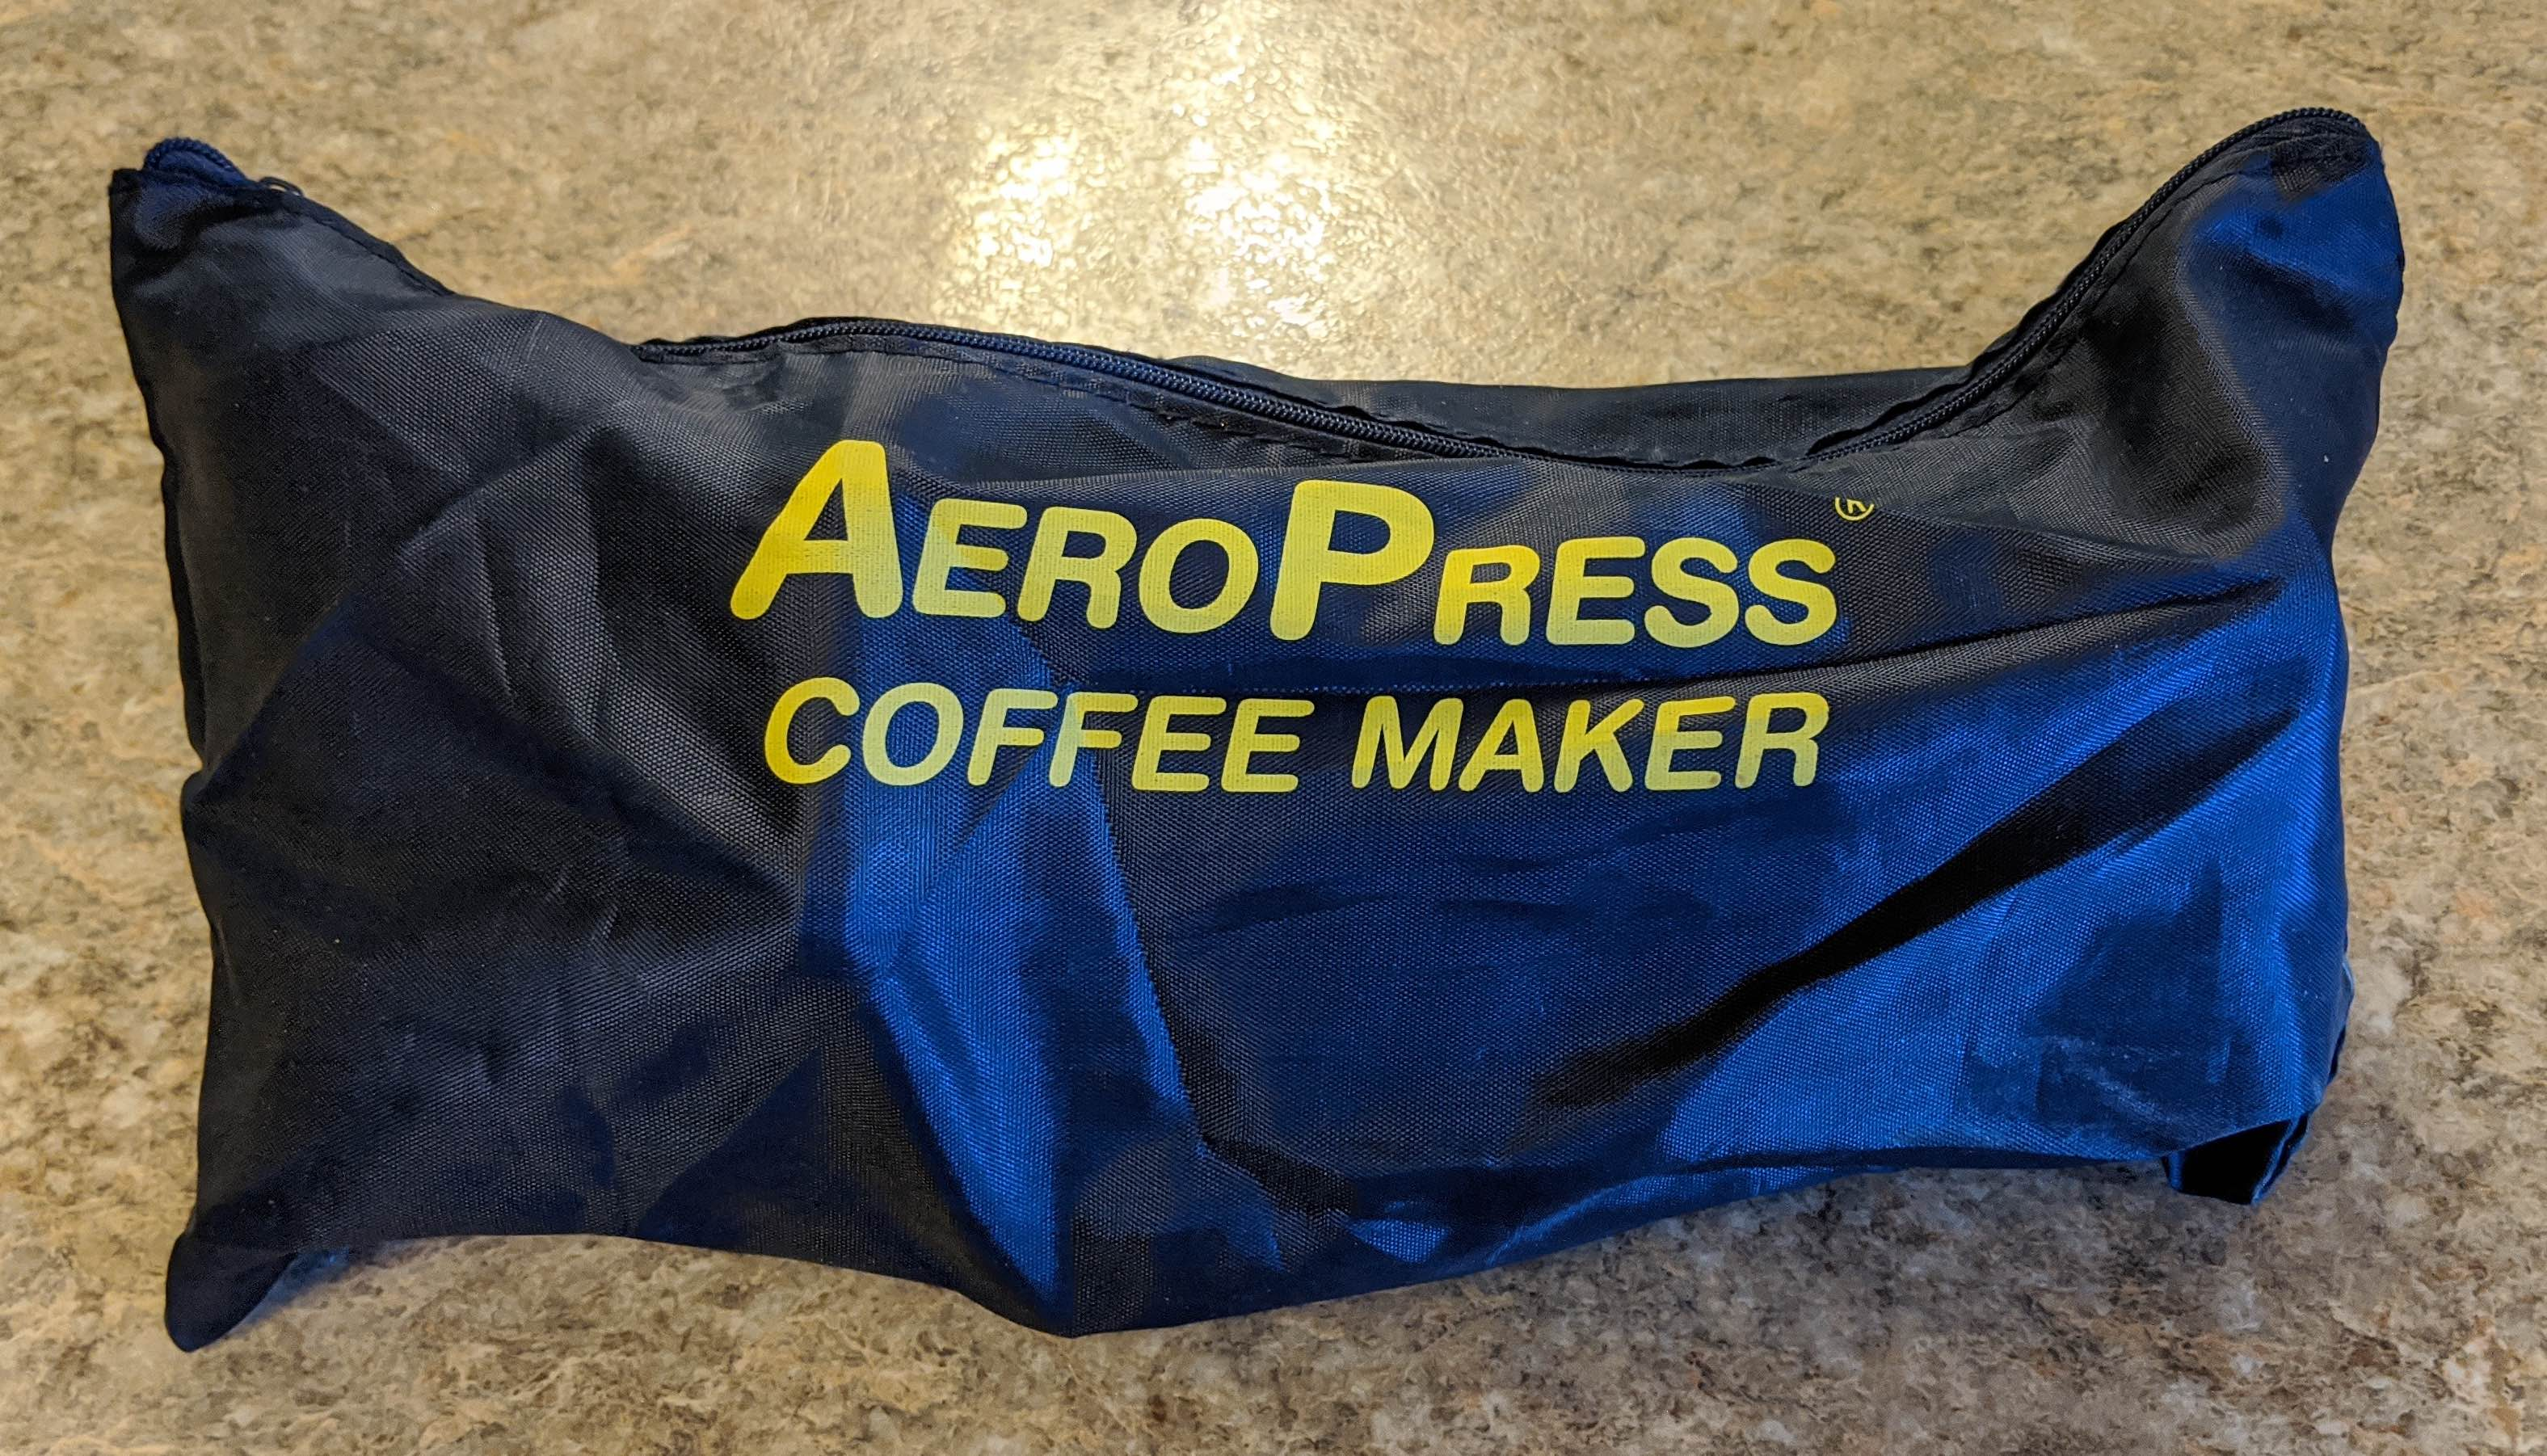 Aeropress components in the tote bag.